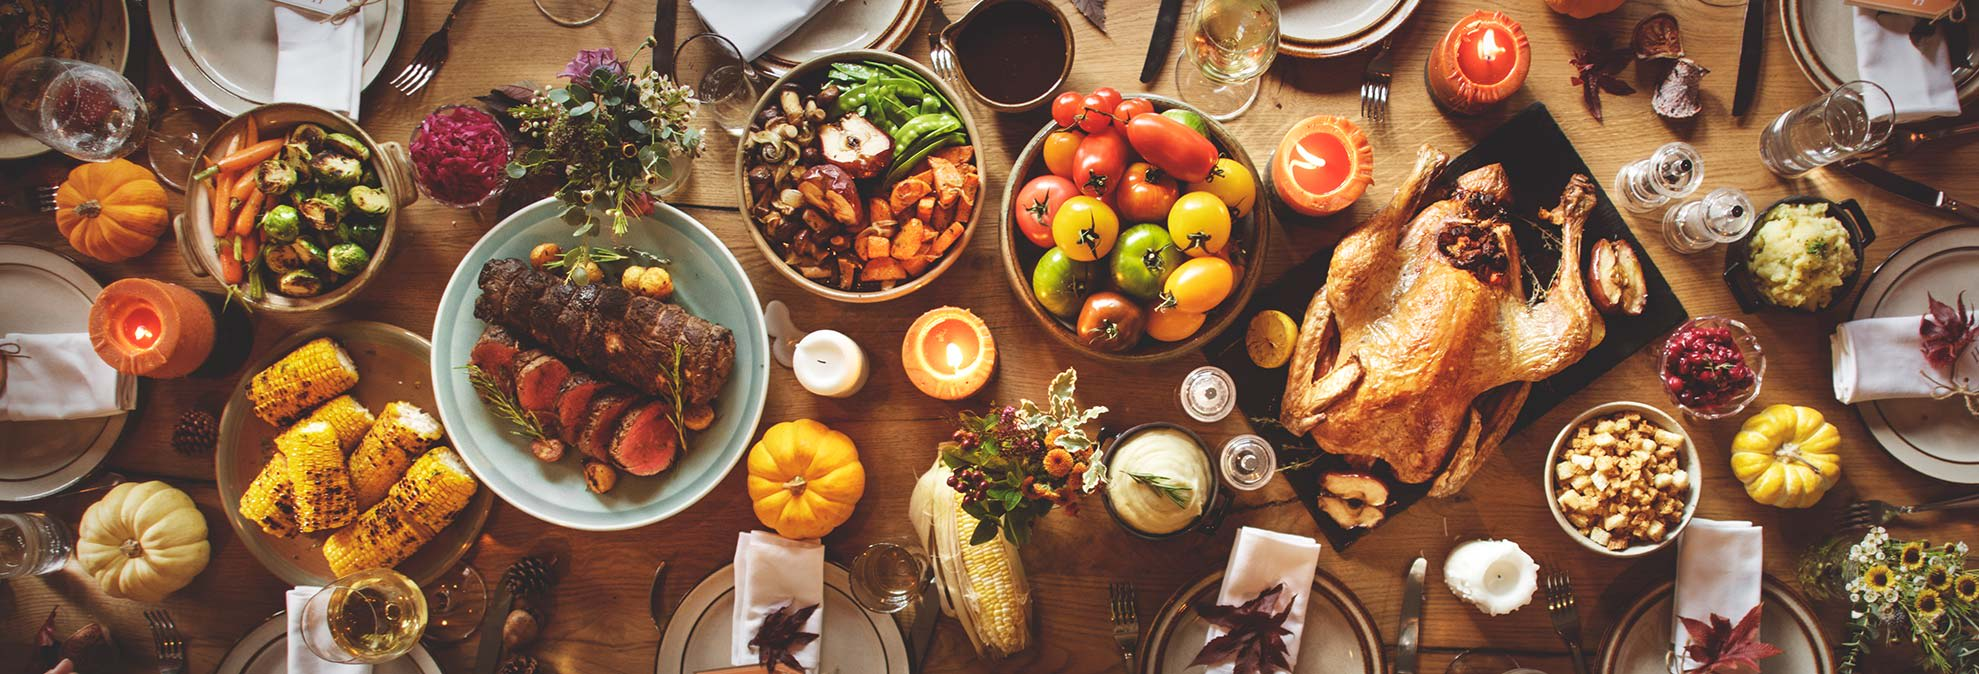 6 Holiday Foods That Are Healthier Than You Think